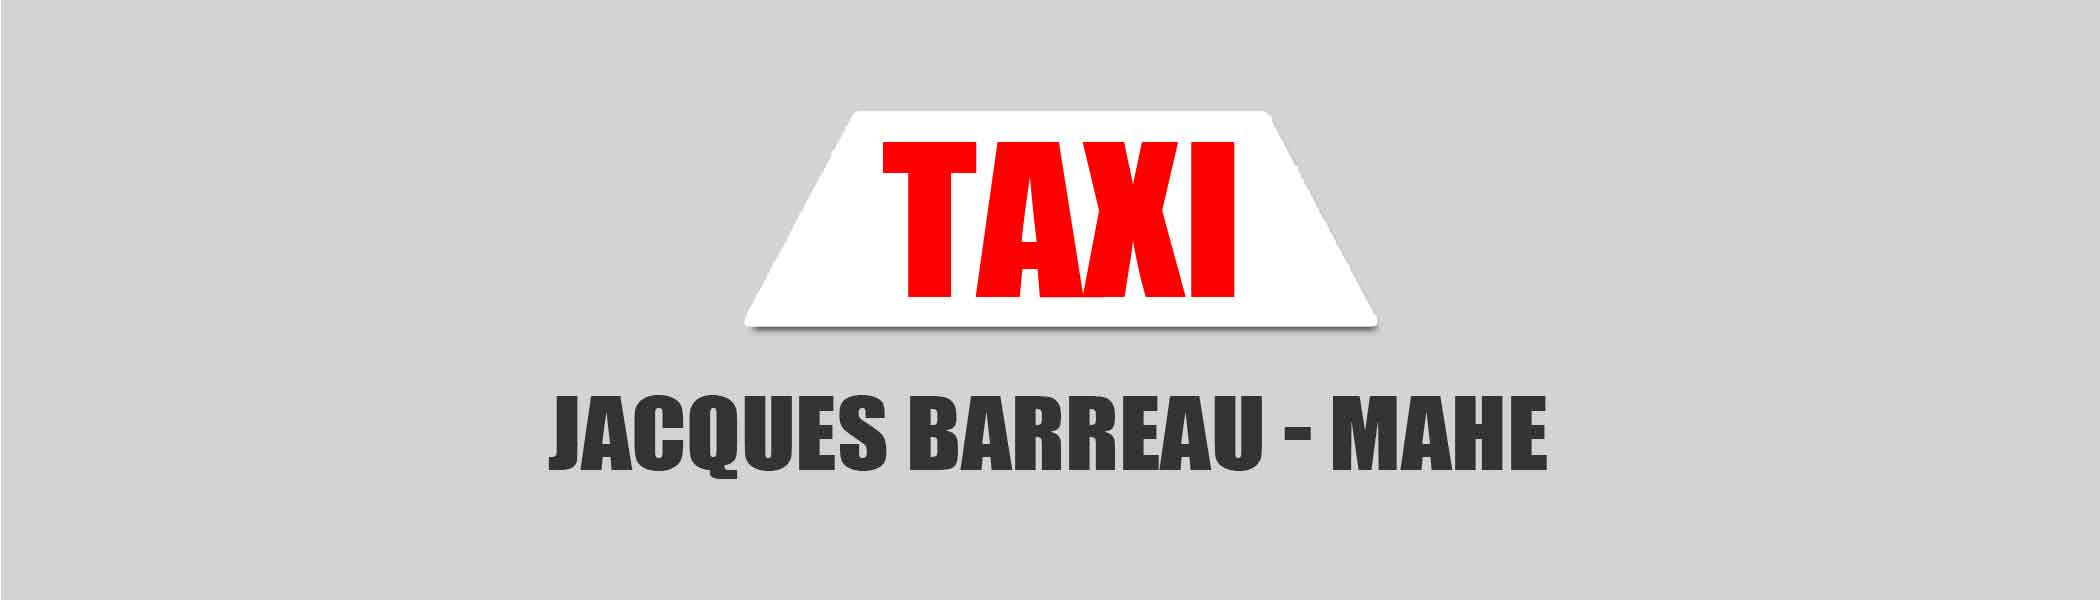 jacques-barreau, Taxis in Seychelles Islands